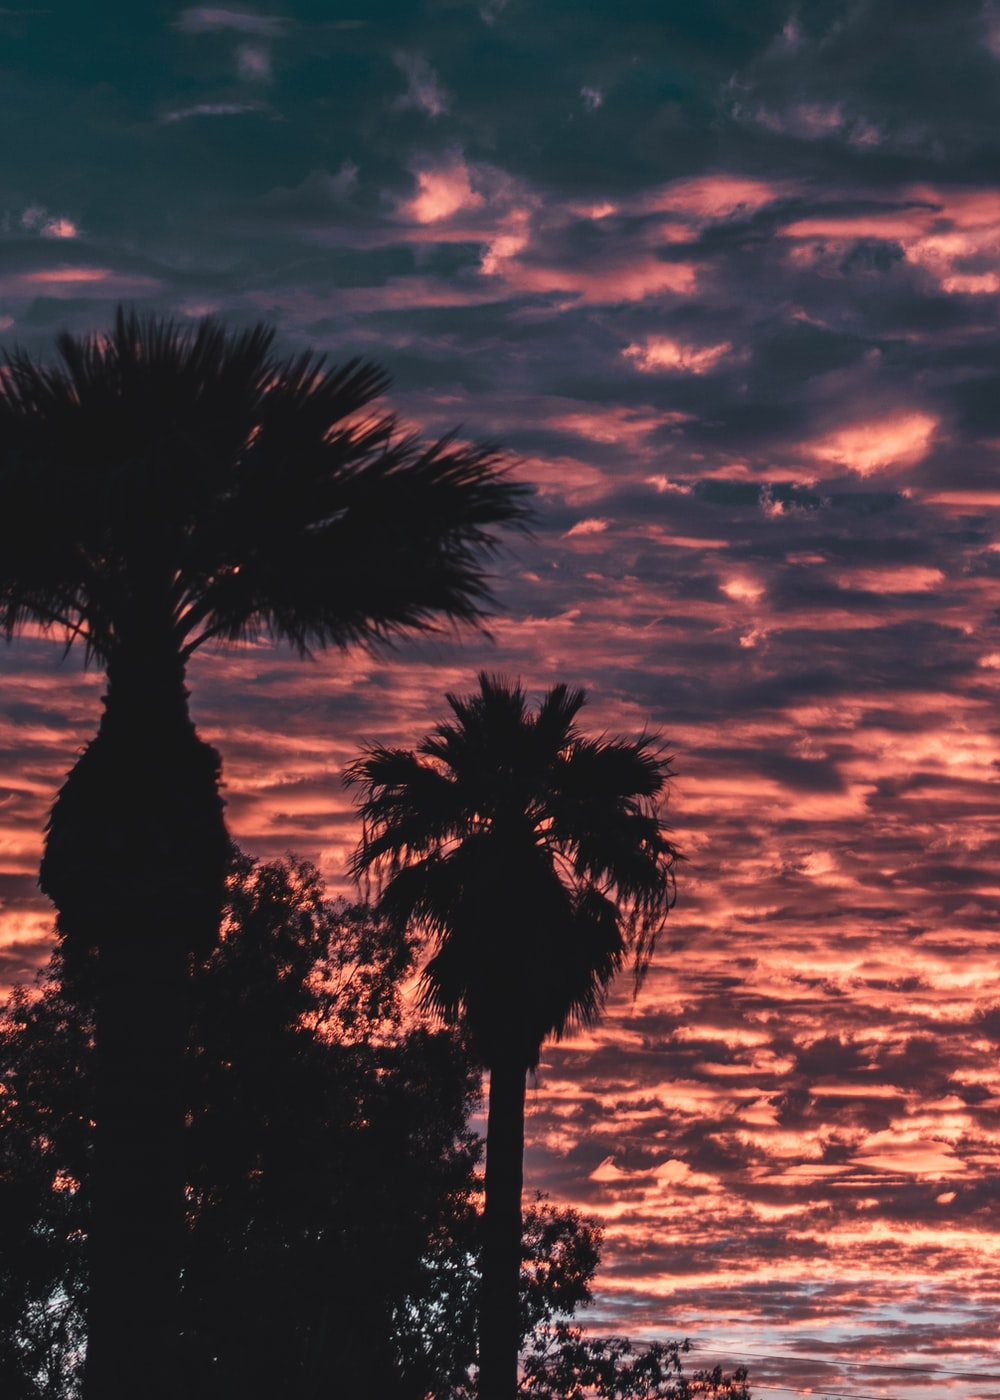 silhouette of palm tree during golden hour